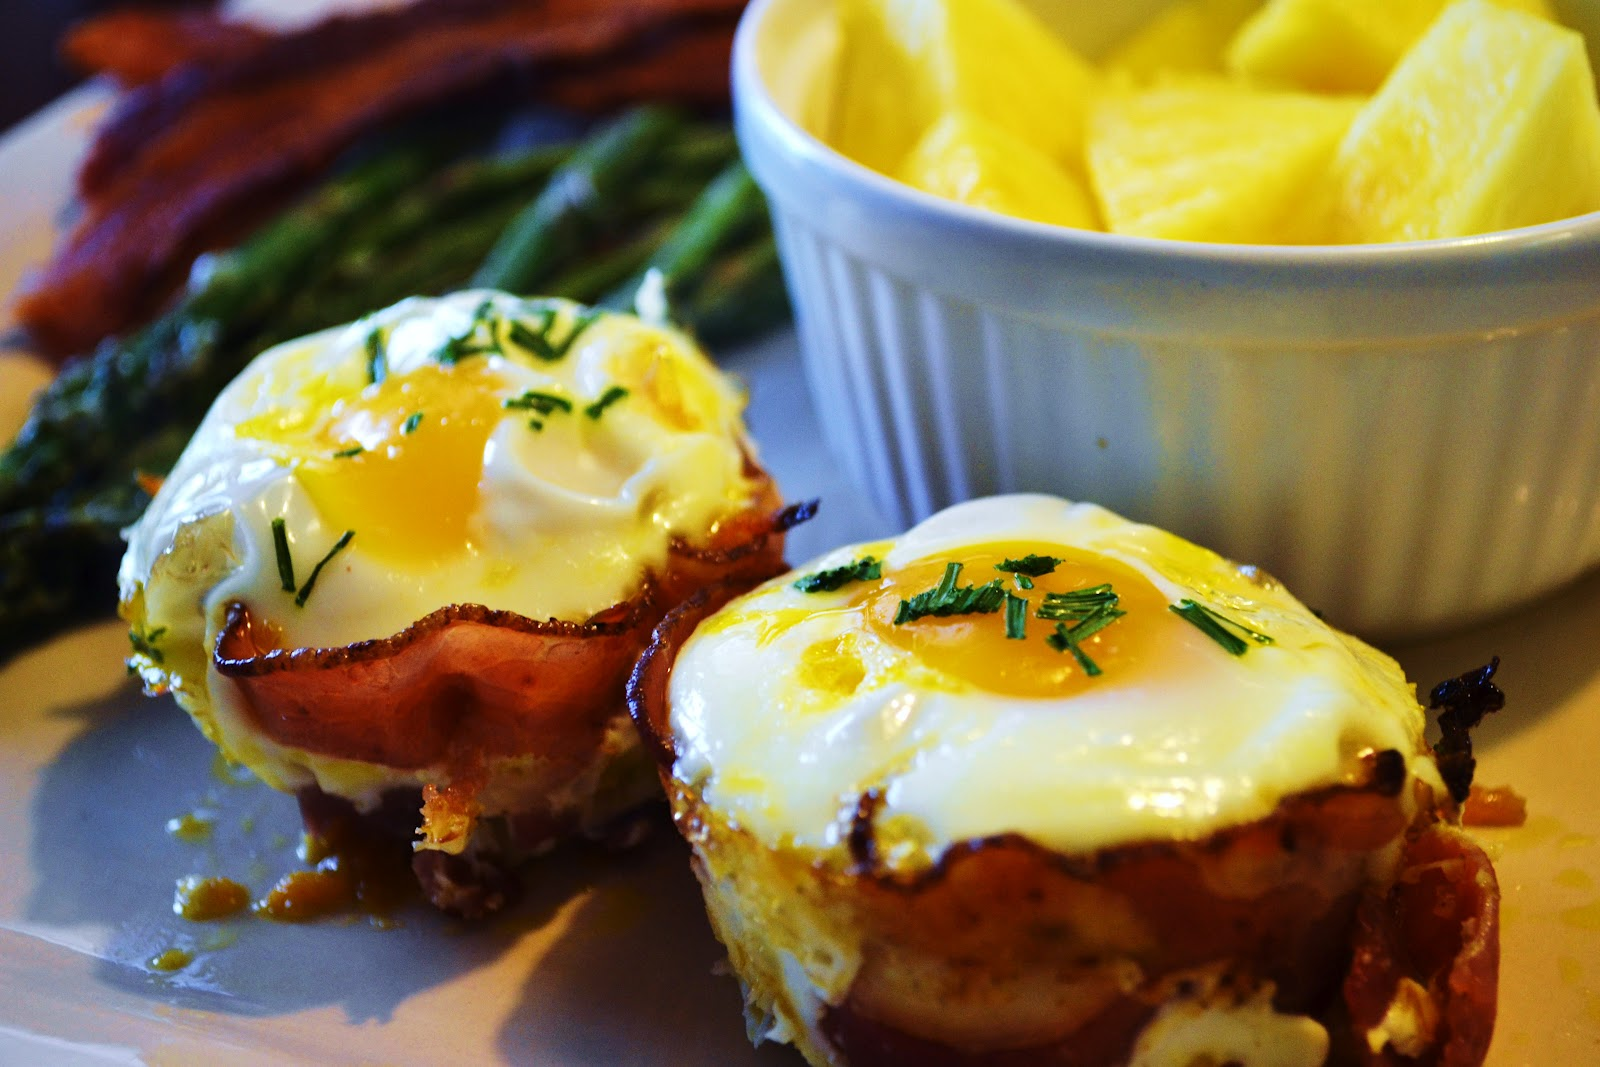 Paleo & Wine: Prosciutto Egg Cups with Sweet Potatoes and Chives